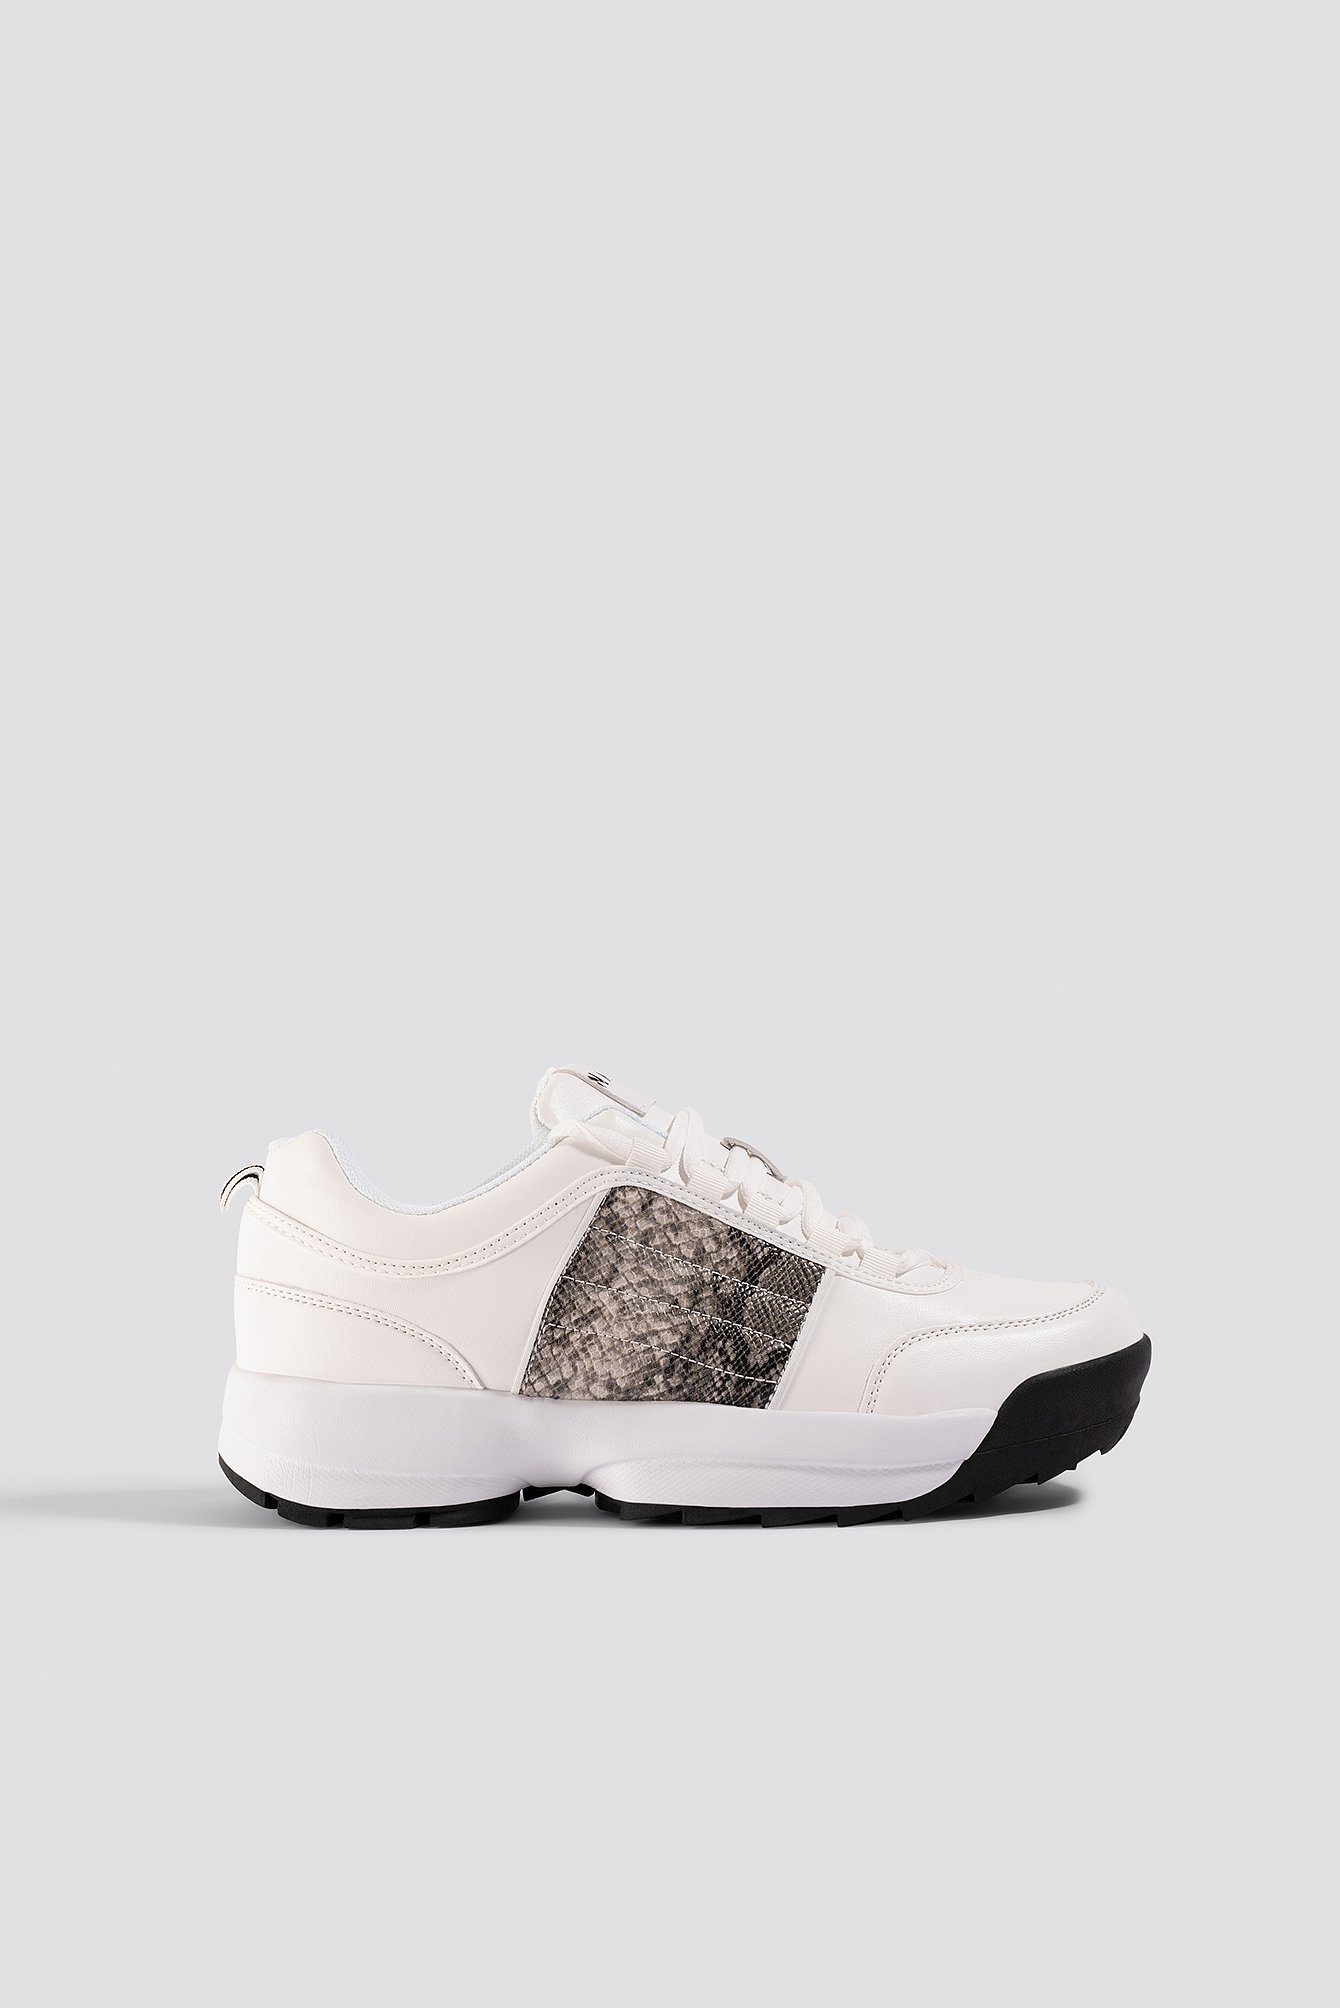 NA-KD Shoes Snake Detail Sneakers - White